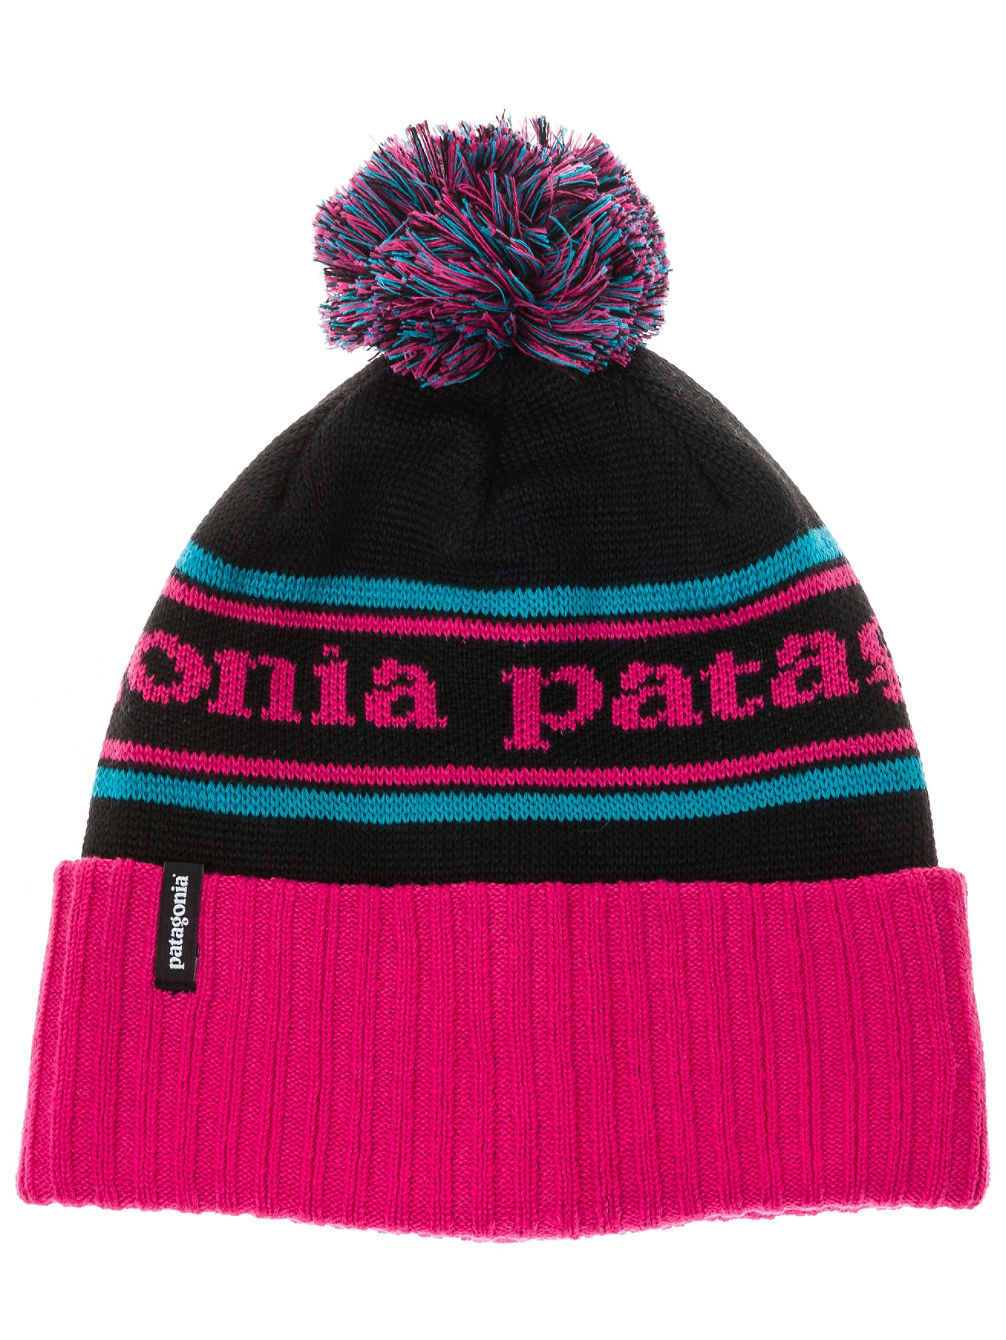 4dda35c4f50b5 Buy Patagonia Powder Town Beanie online at Blue Tomato